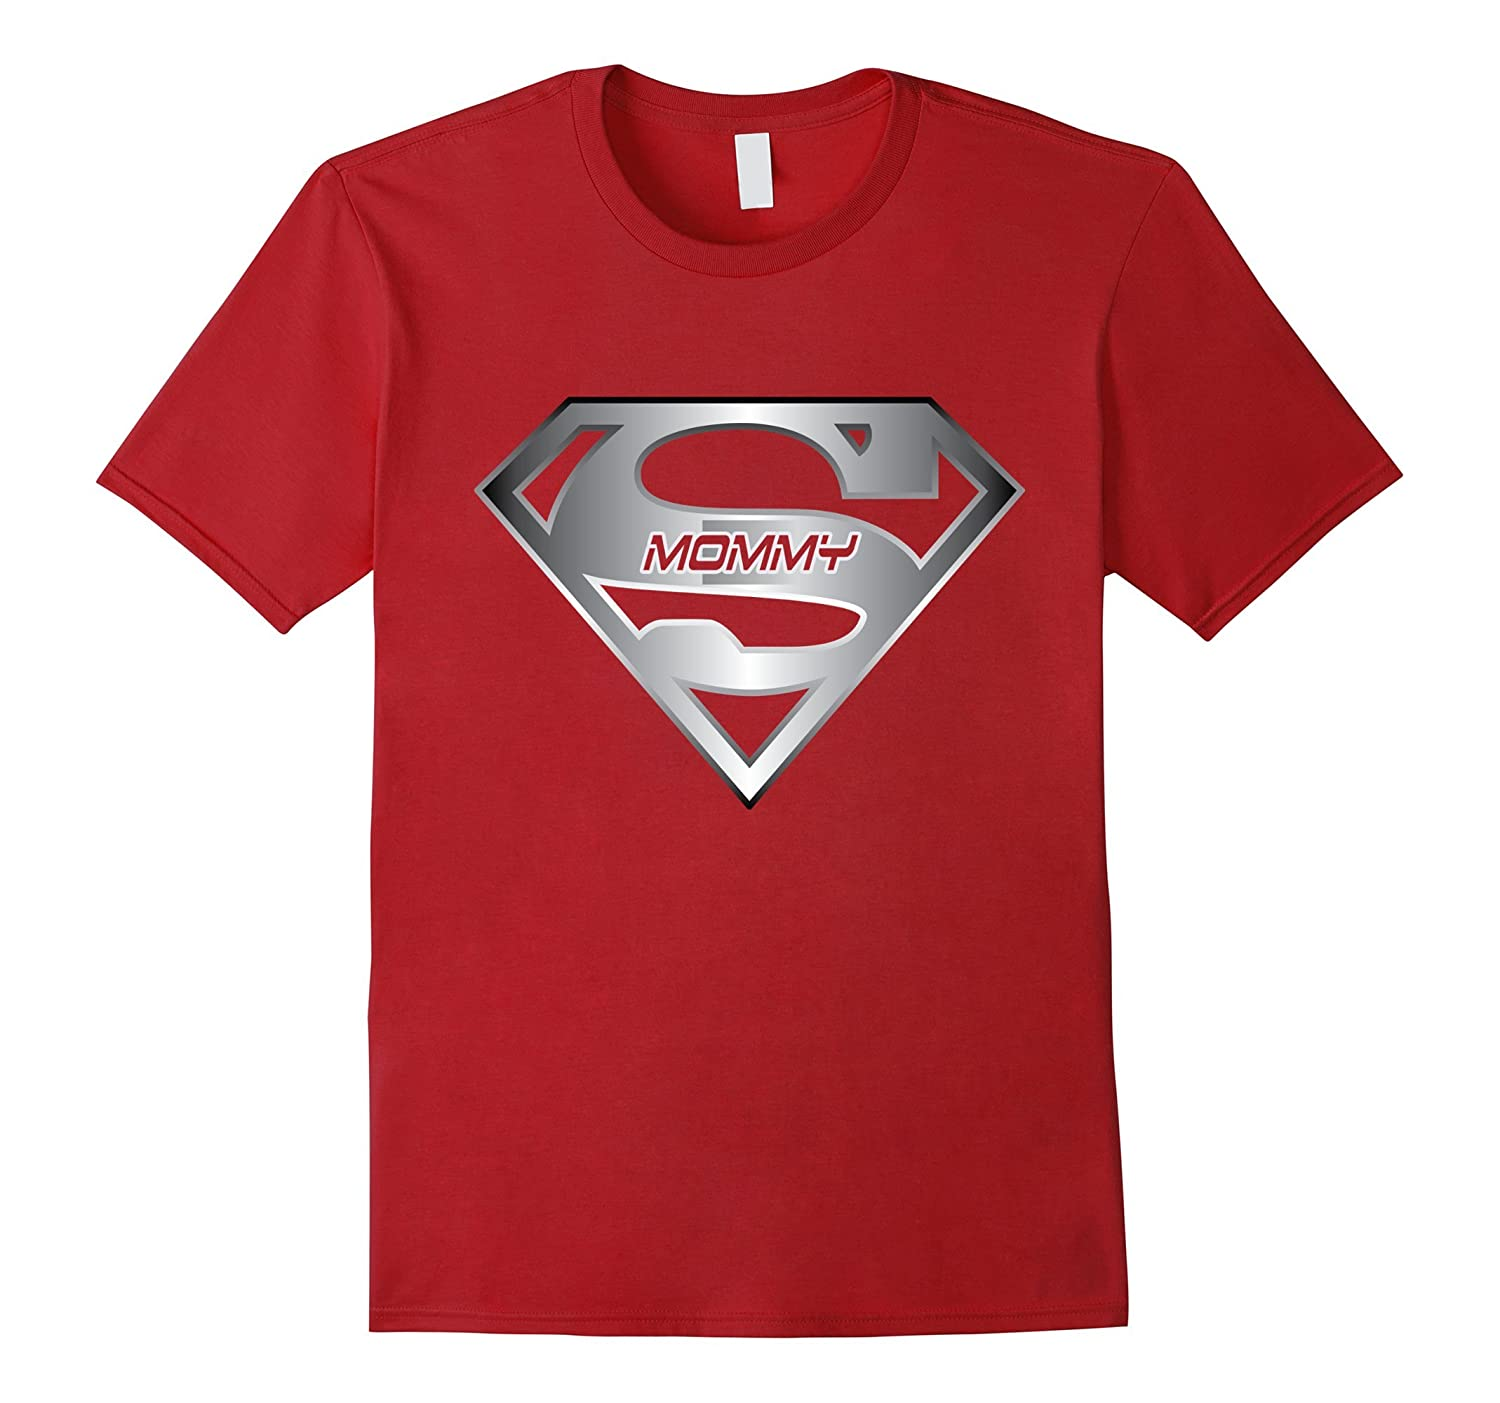 Super Mommy Shirt best gifts mother day t-shirt-Vaci